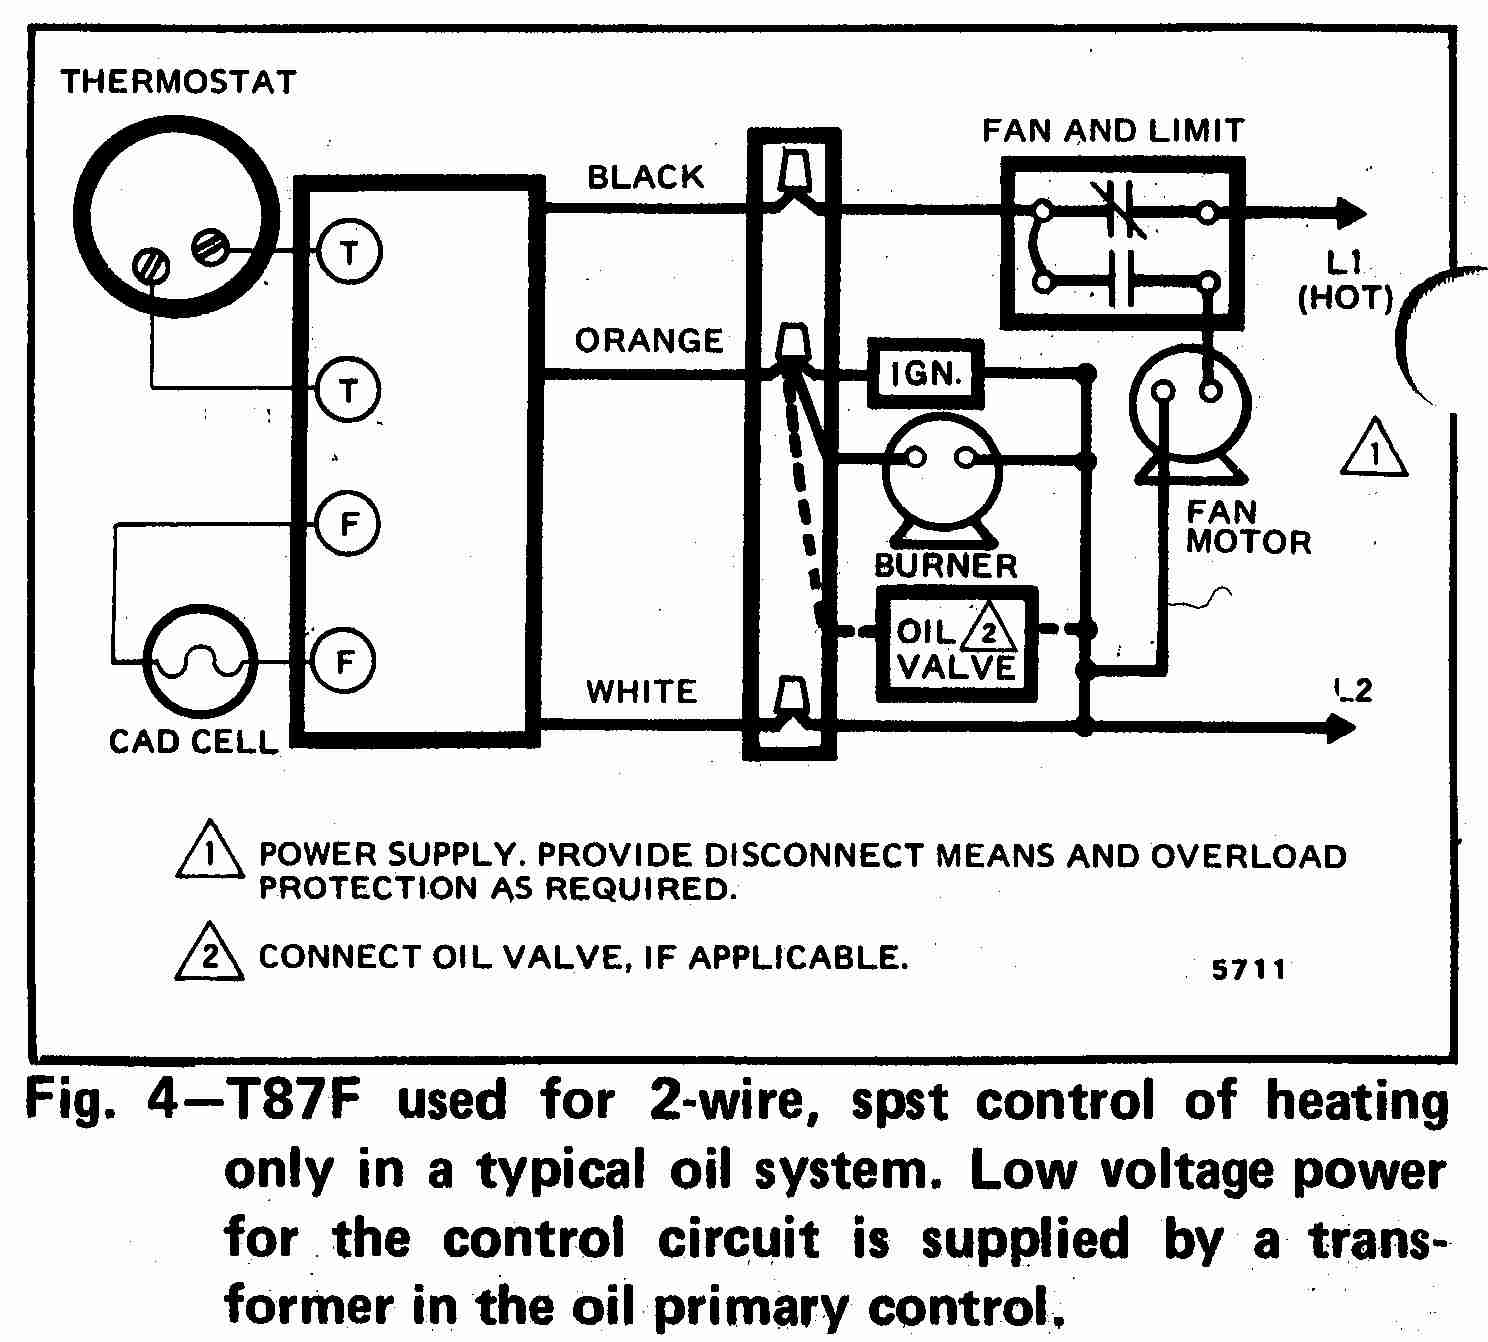 TT_T87F_0002_2W_DJF room thermostat wiring diagrams for hvac systems aquastat wiring diagram at panicattacktreatment.co